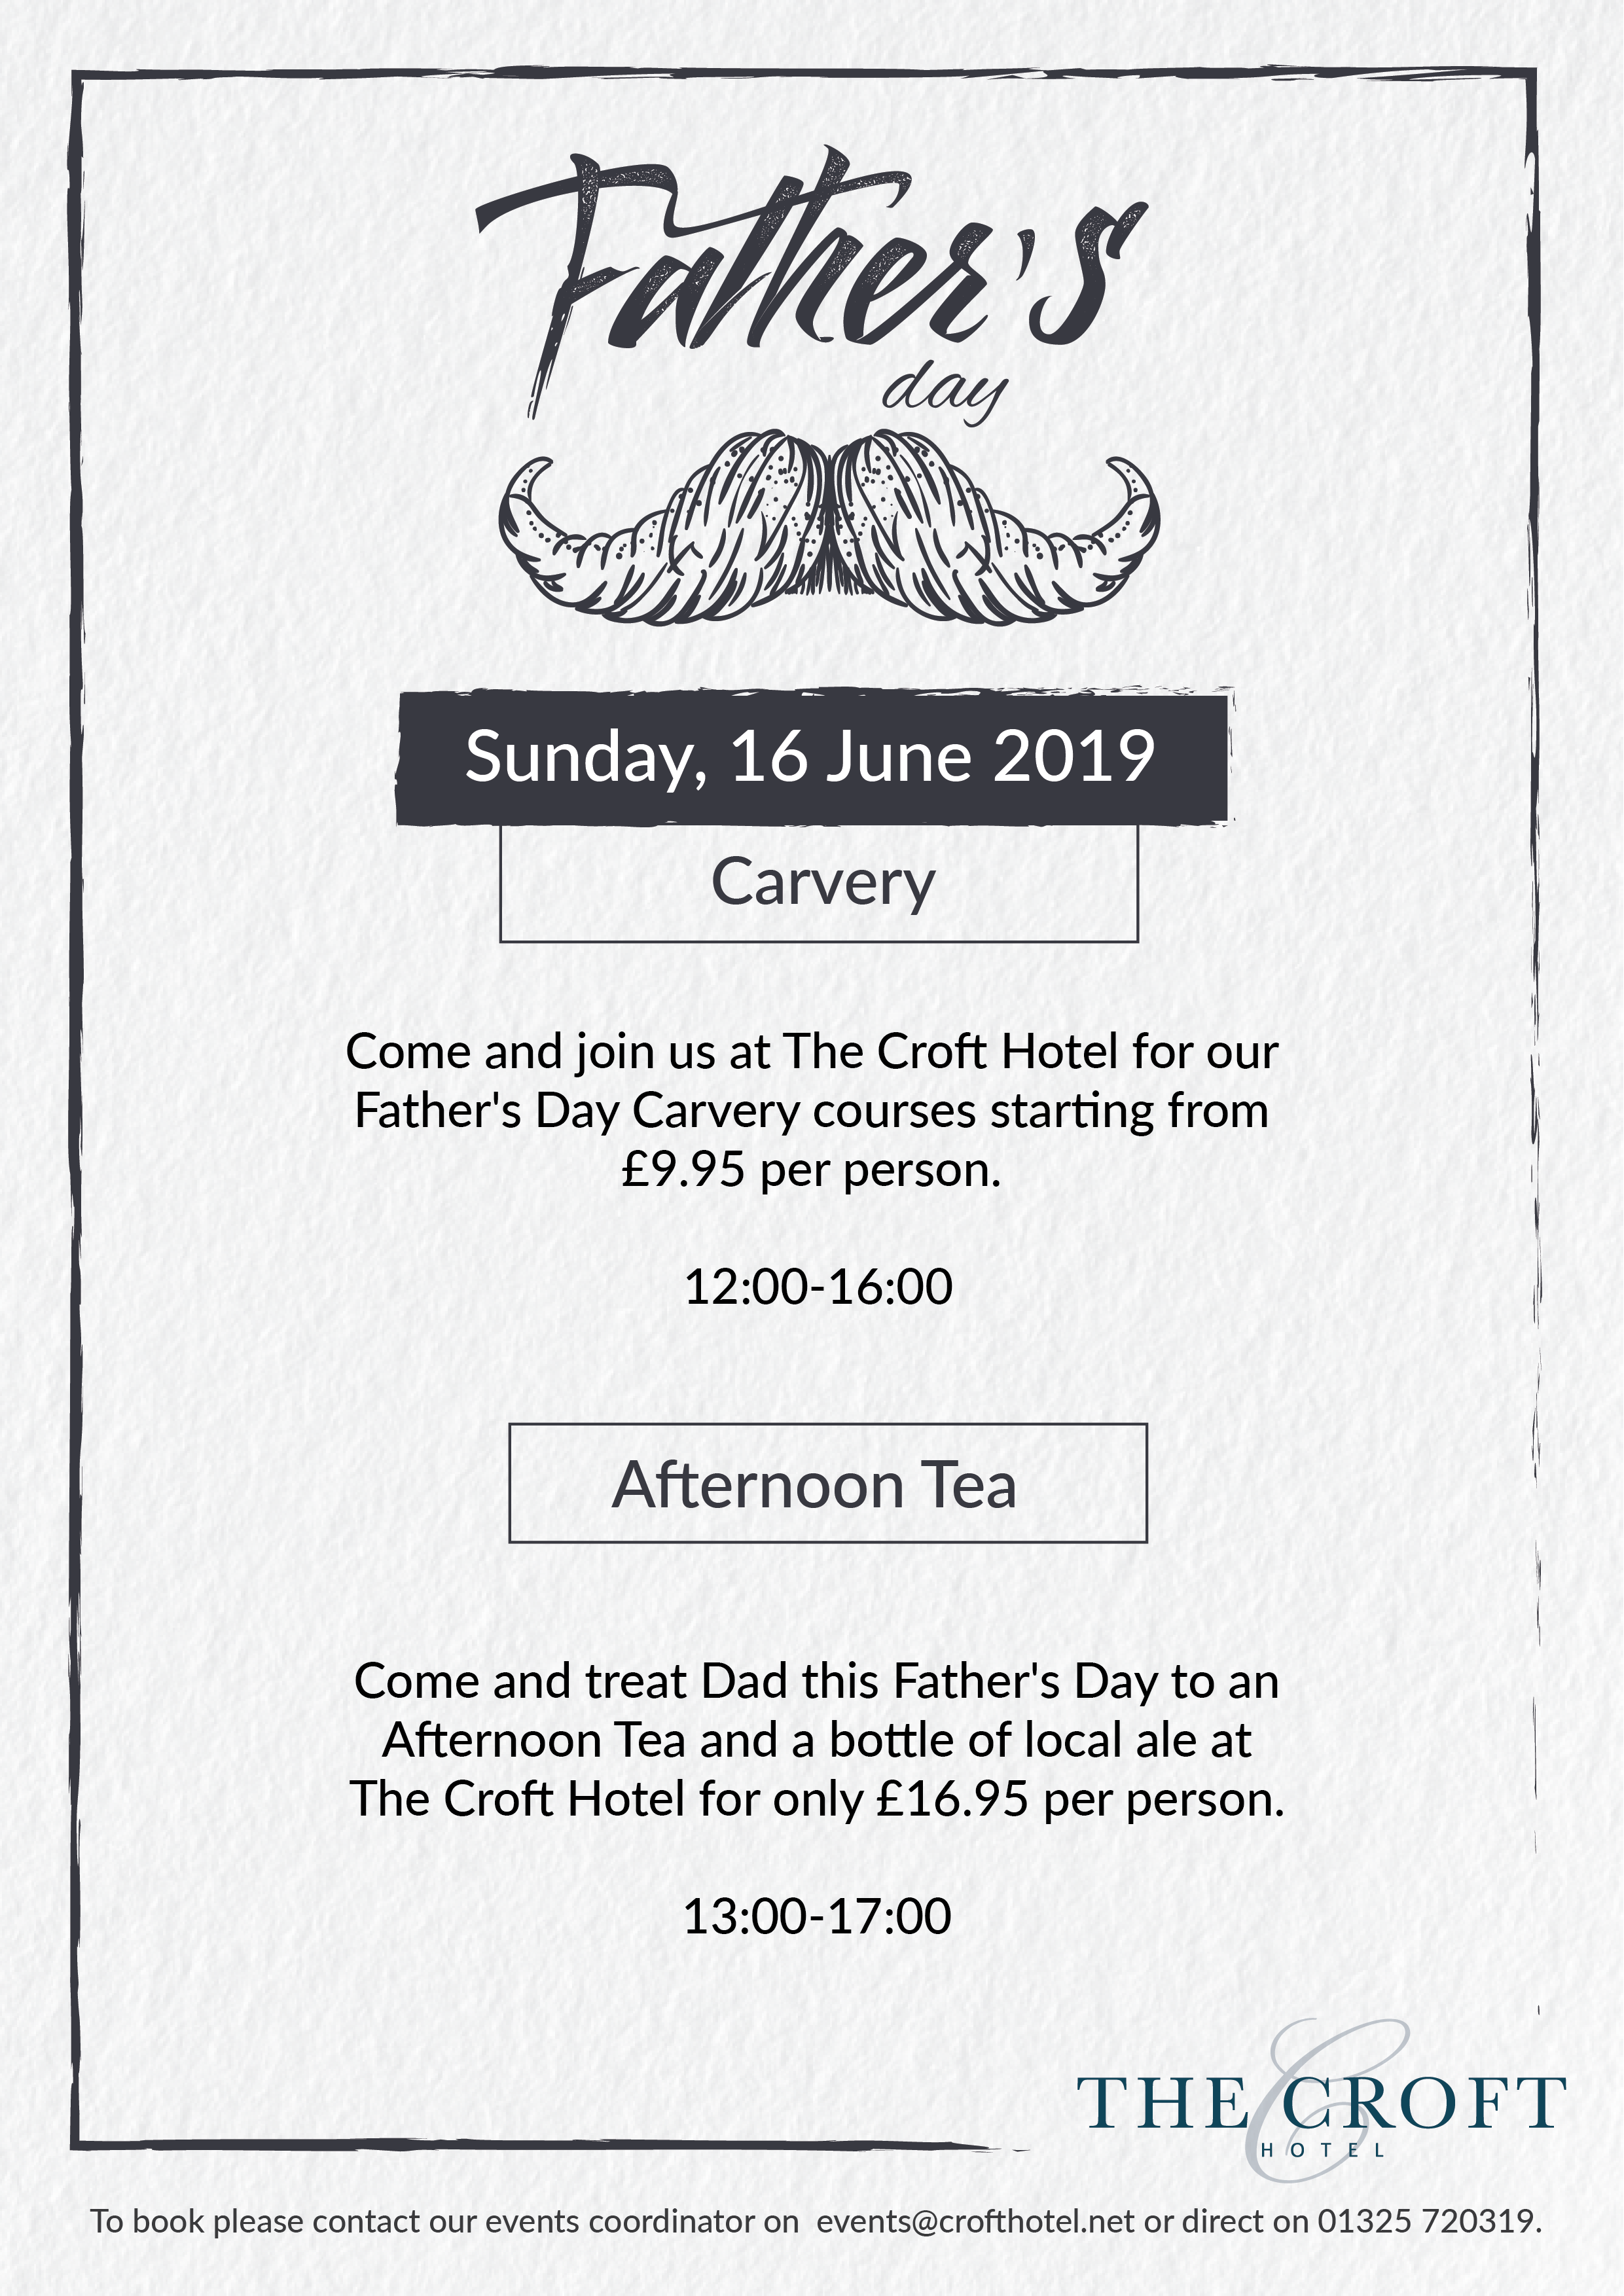 Events for Father's Day in Darlington - The Croft Hotel